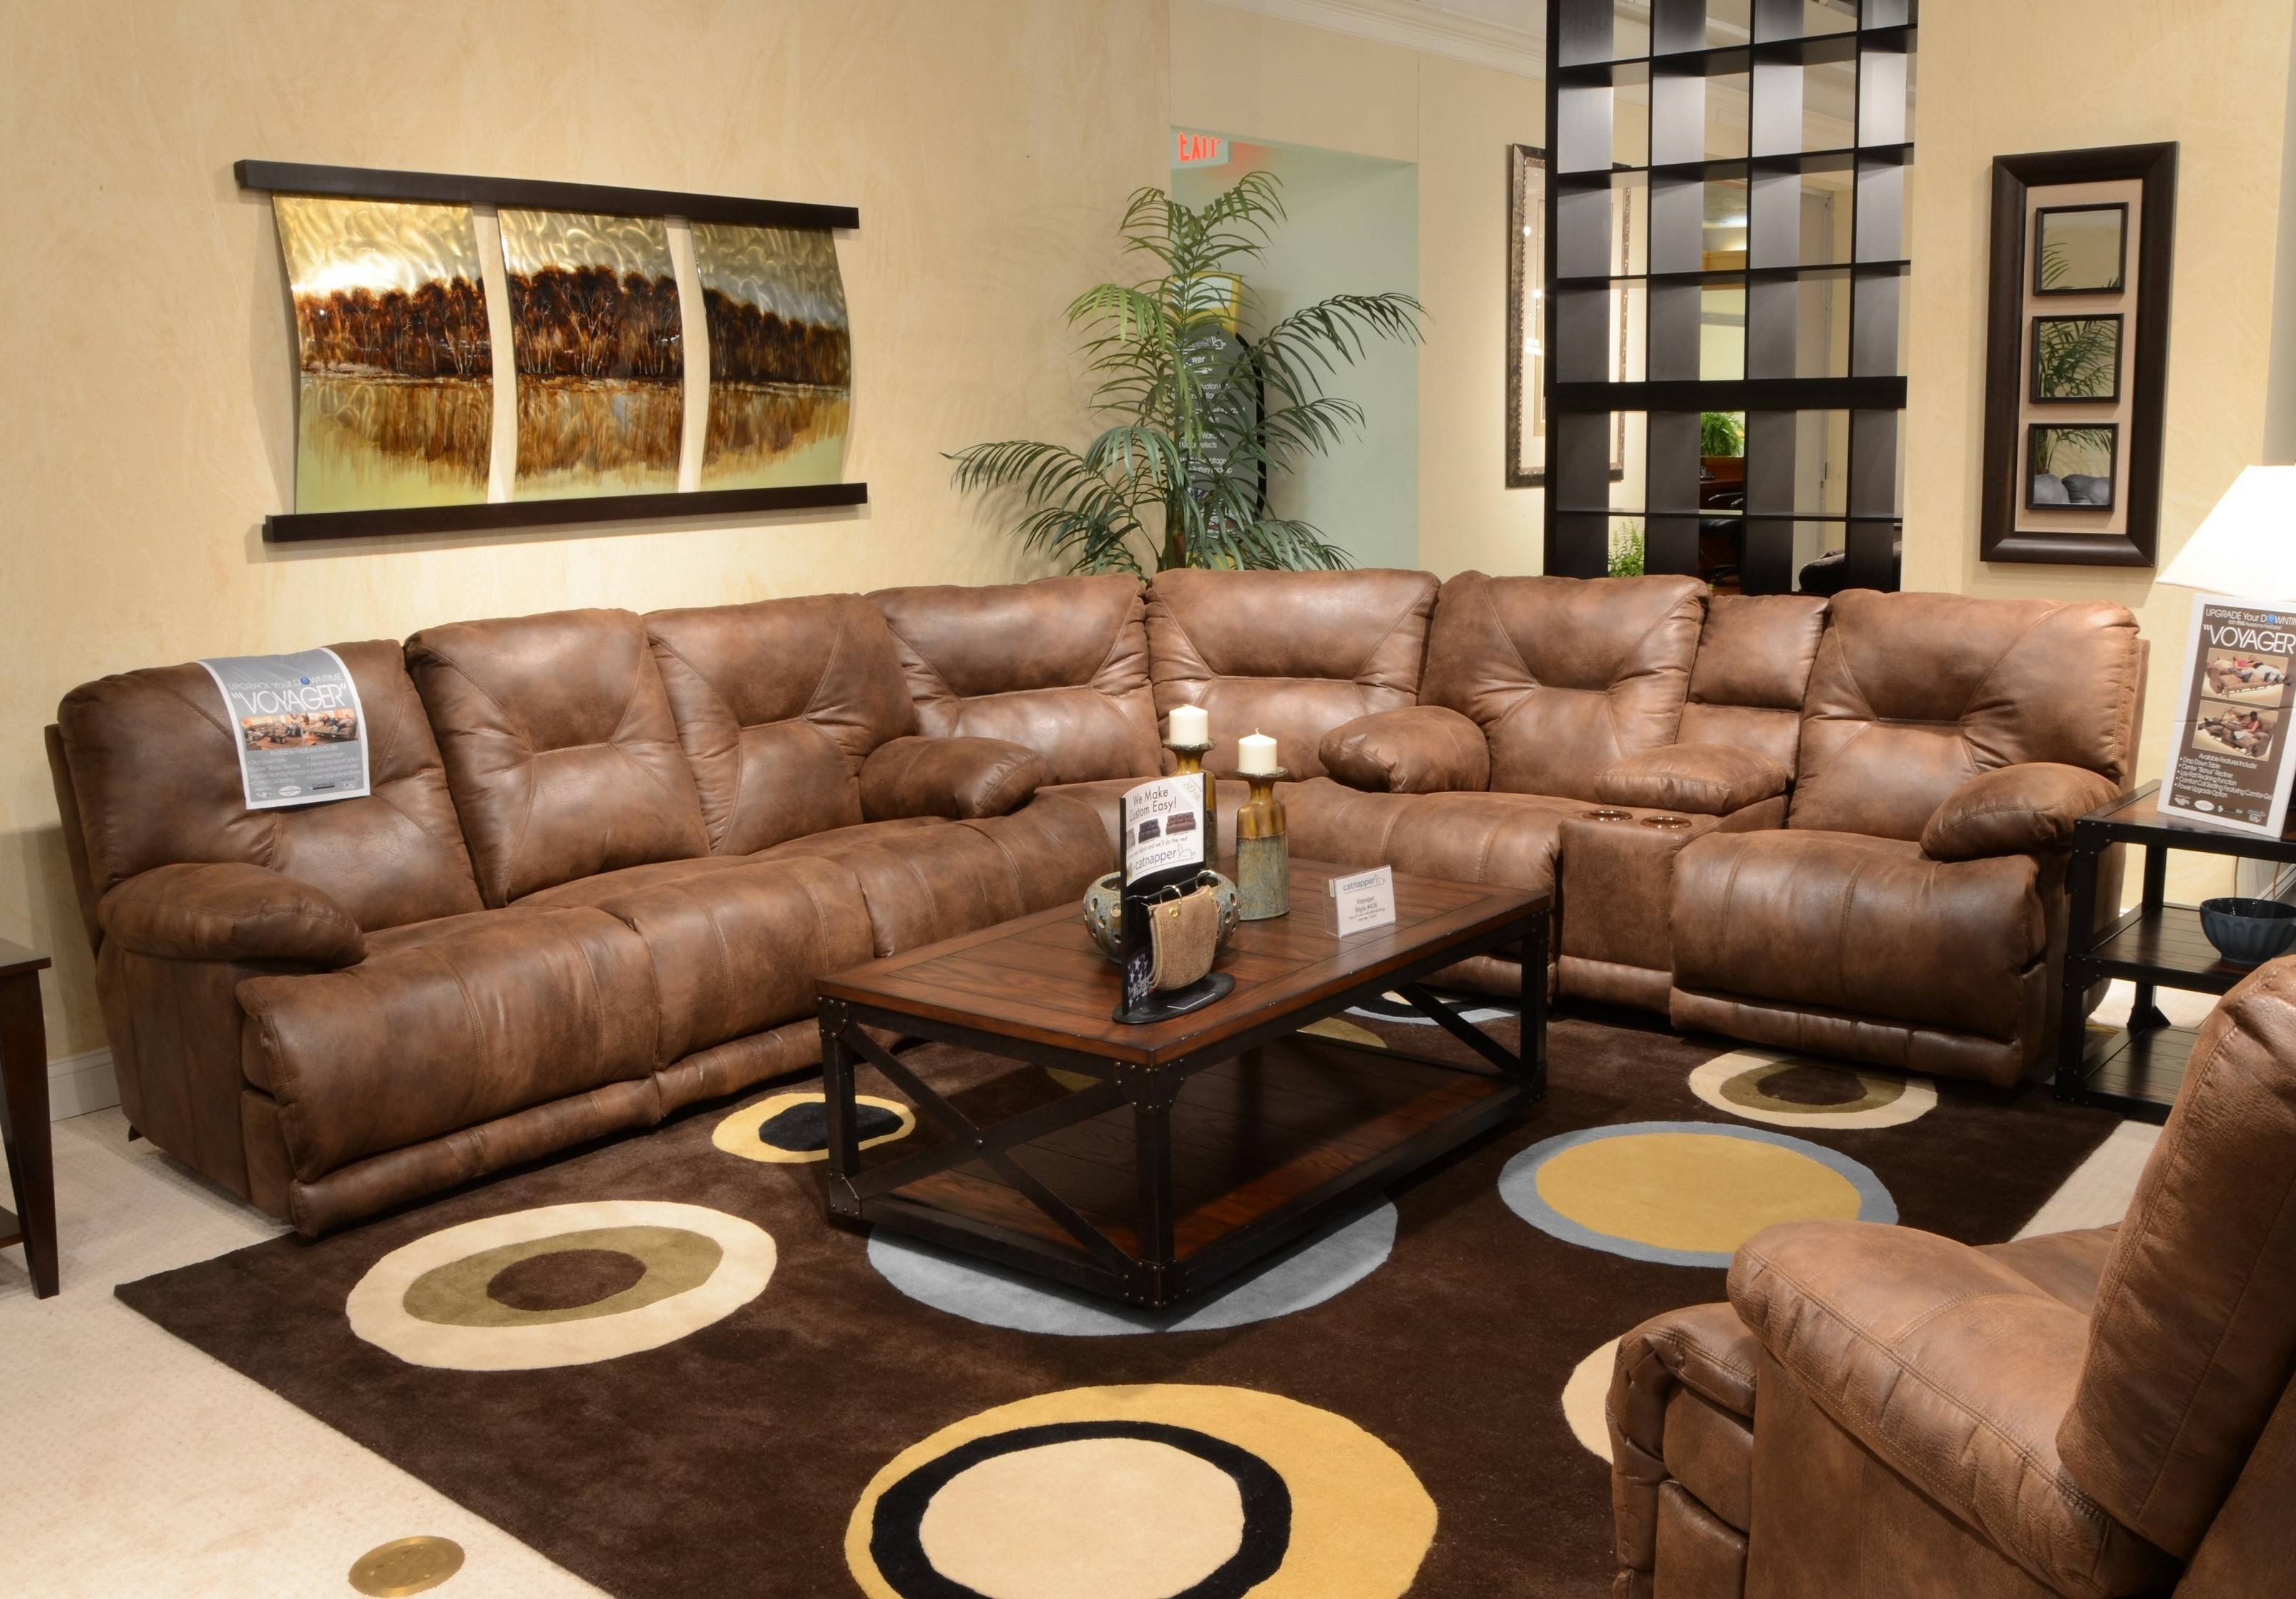 Sectional Sofa Decorating Ideas 76 With Sectional Sofa Decorating in Decorating With a Sectional Sofa (Image 24 of 30)